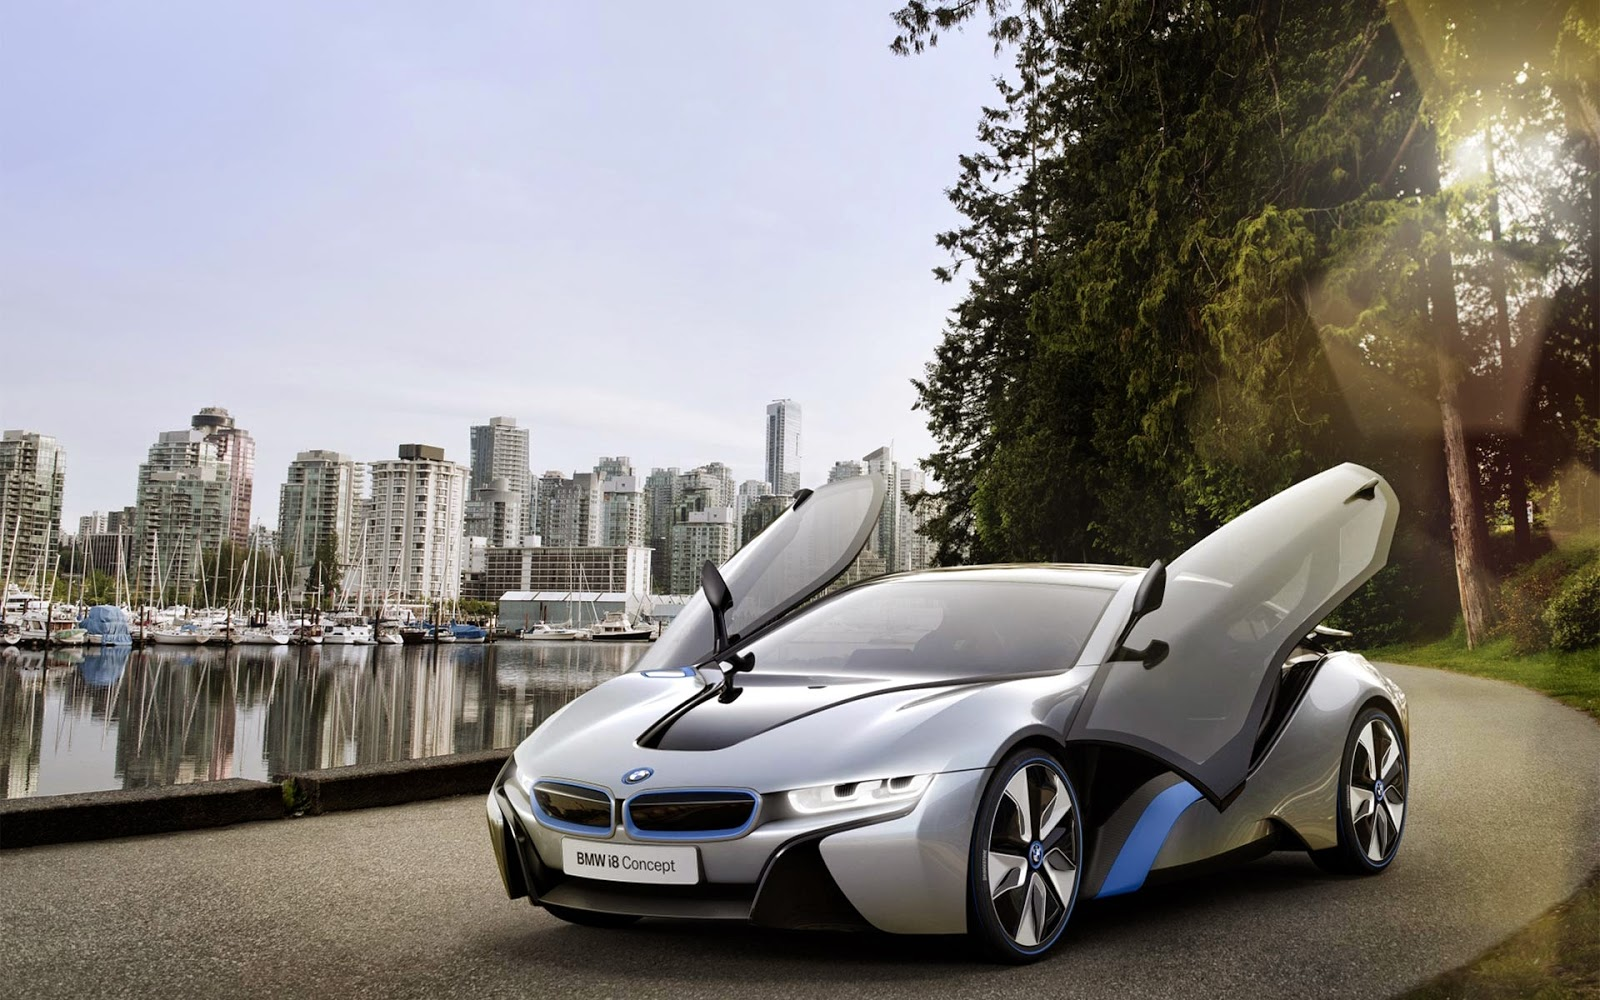 Bmw car wallpaper wallpapers for free download about (3,300.